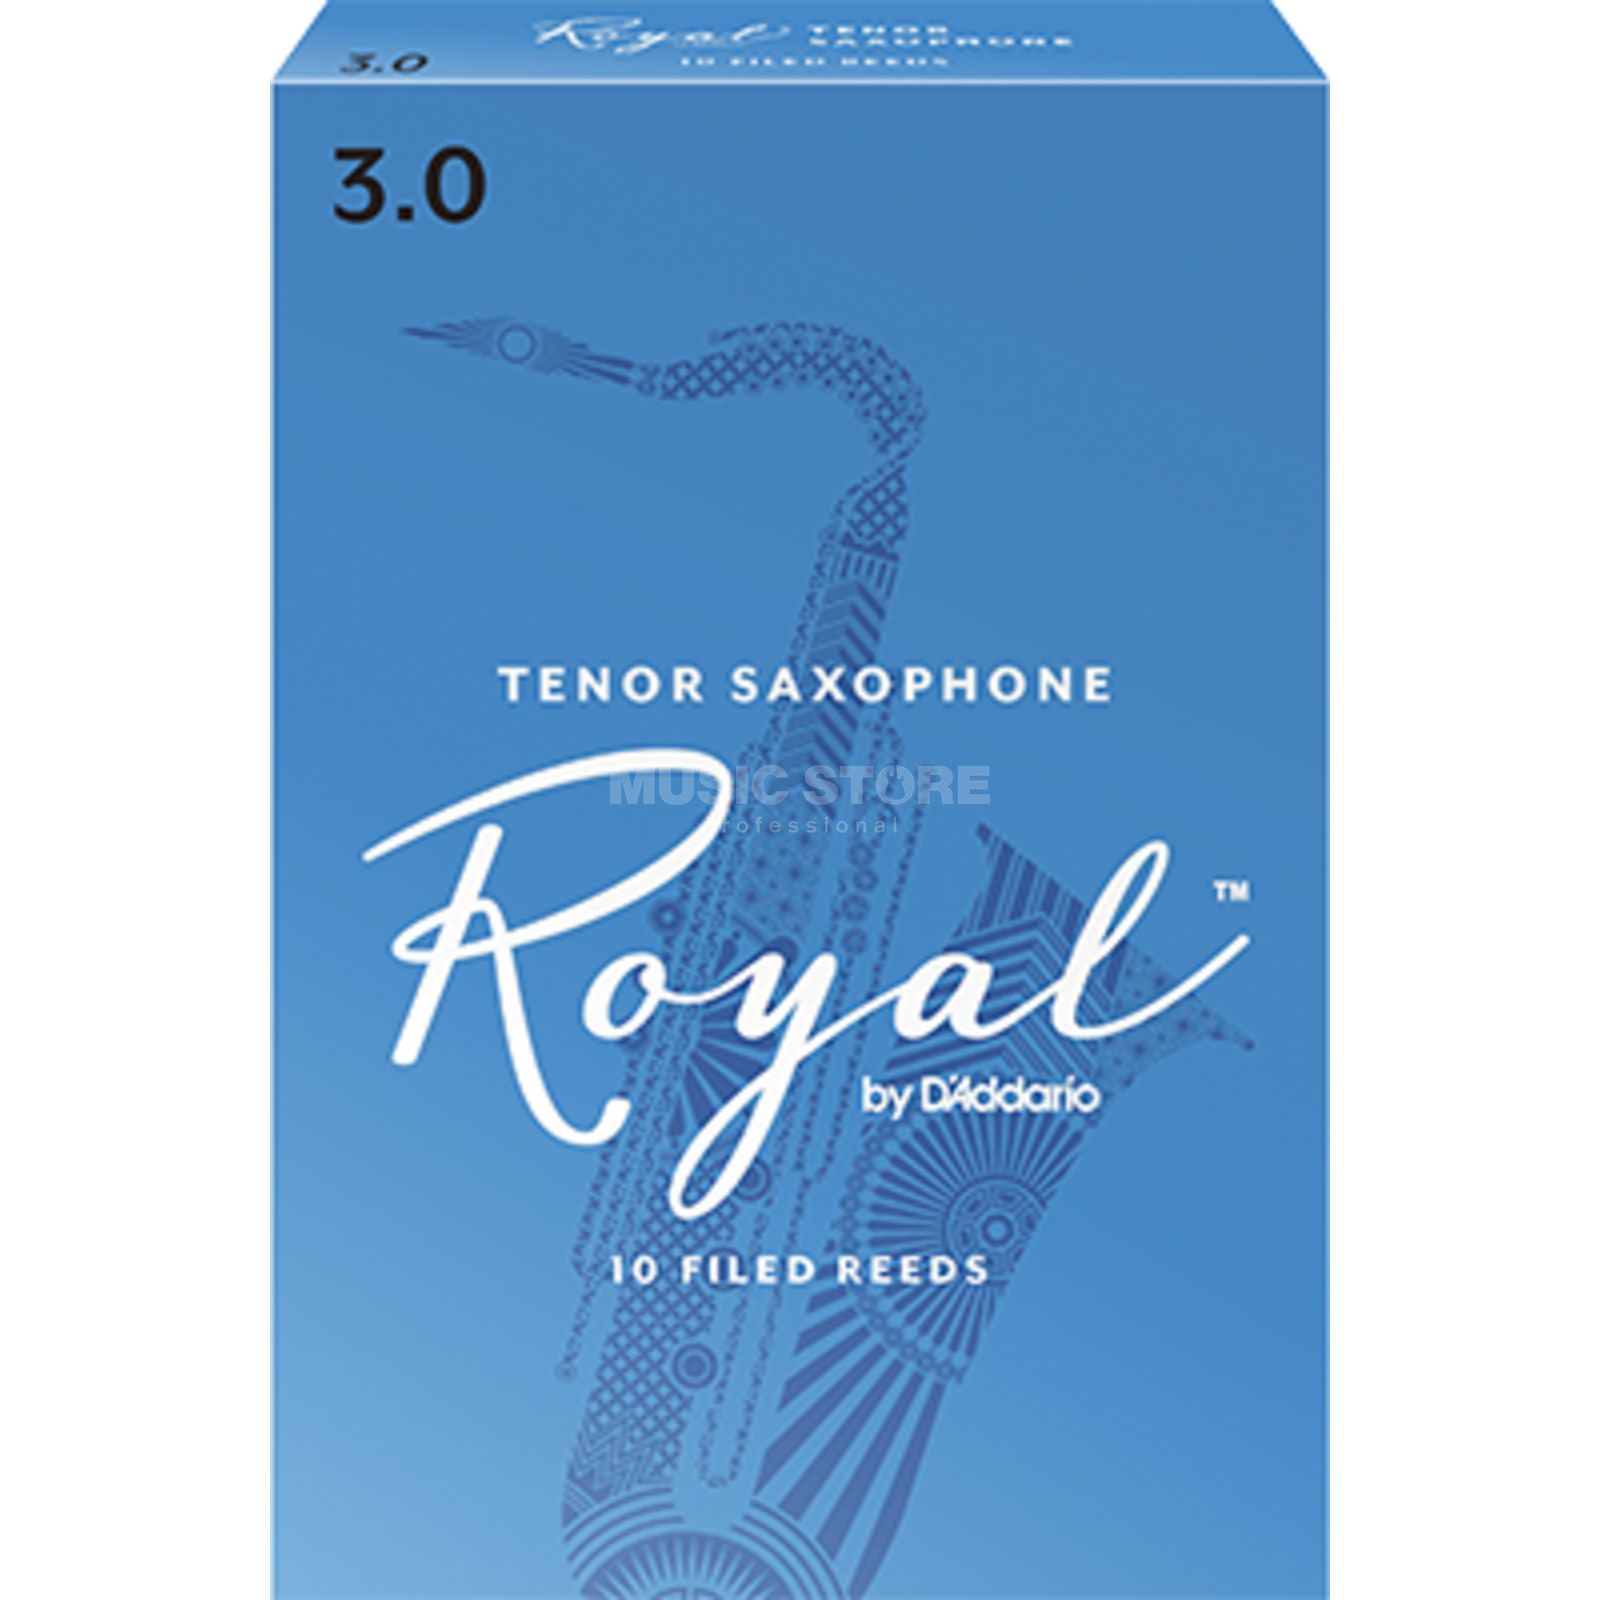 D'Addario Woodwinds Rico Royal 3 Tenor Saxophone Reeds Box of 10 Immagine prodotto